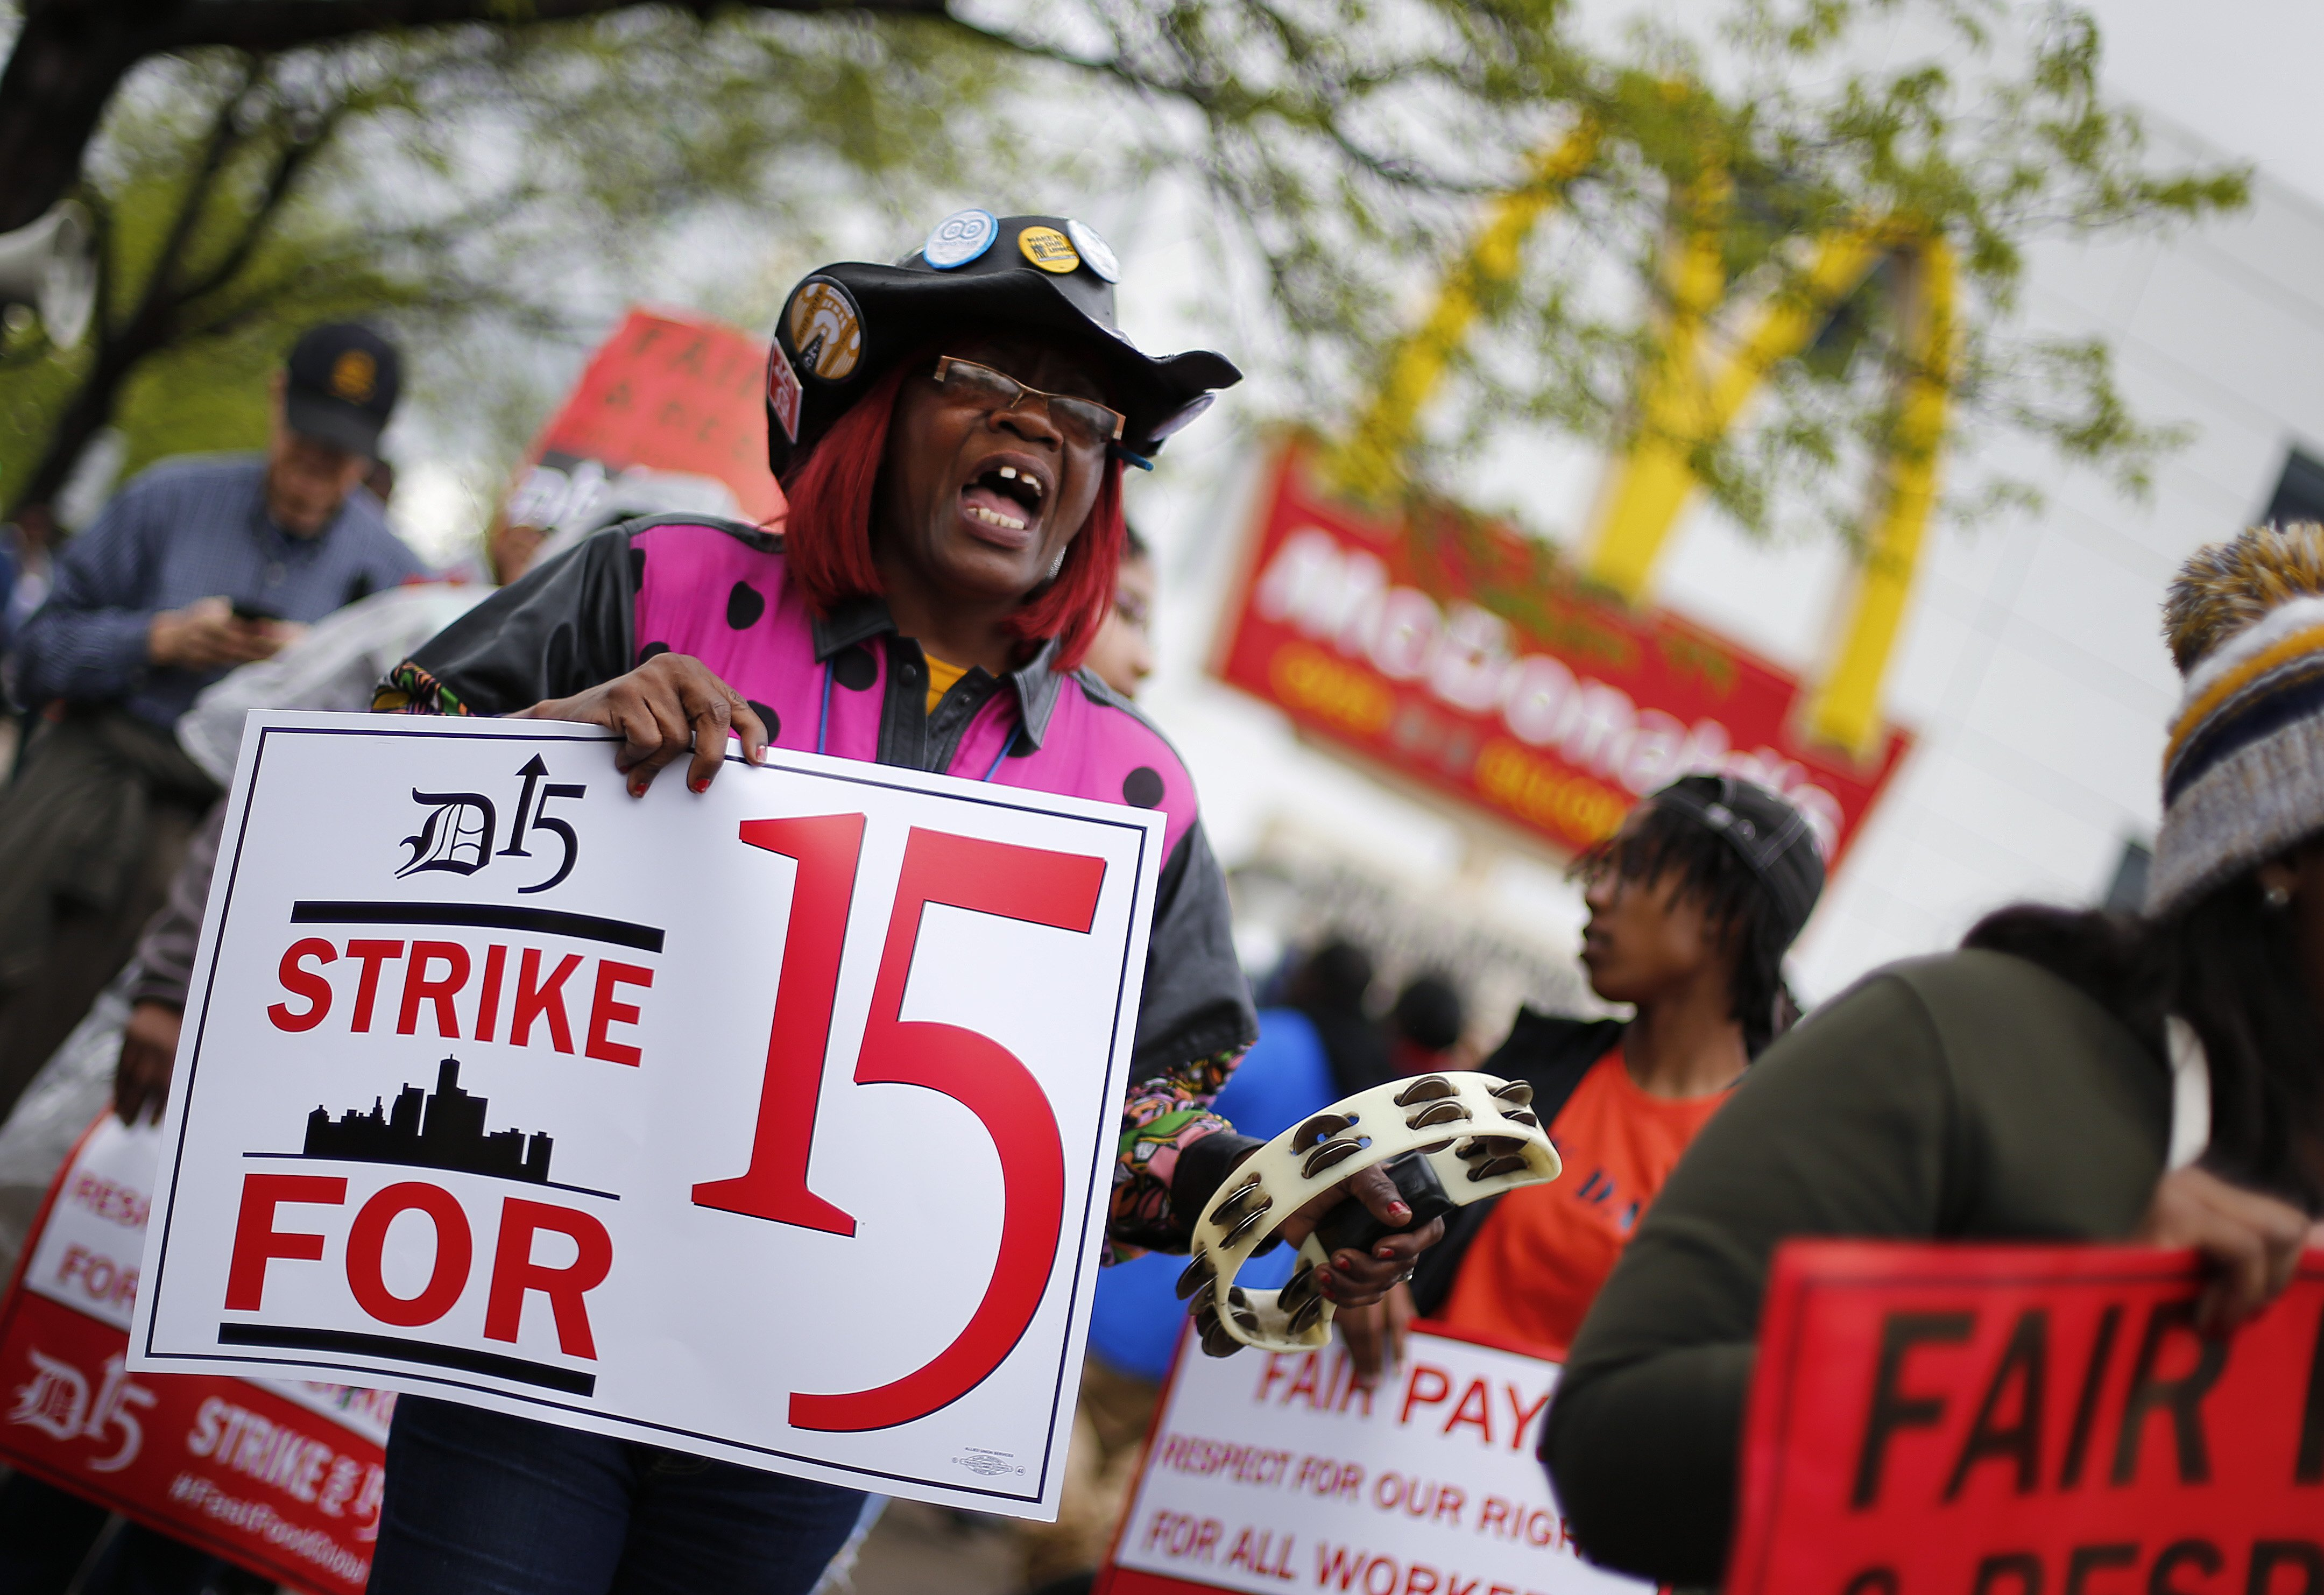 <b>Detroit:</b> Velma Conrelius protests for higher wages outside a McDonalds restaurant on May 15, 2014.